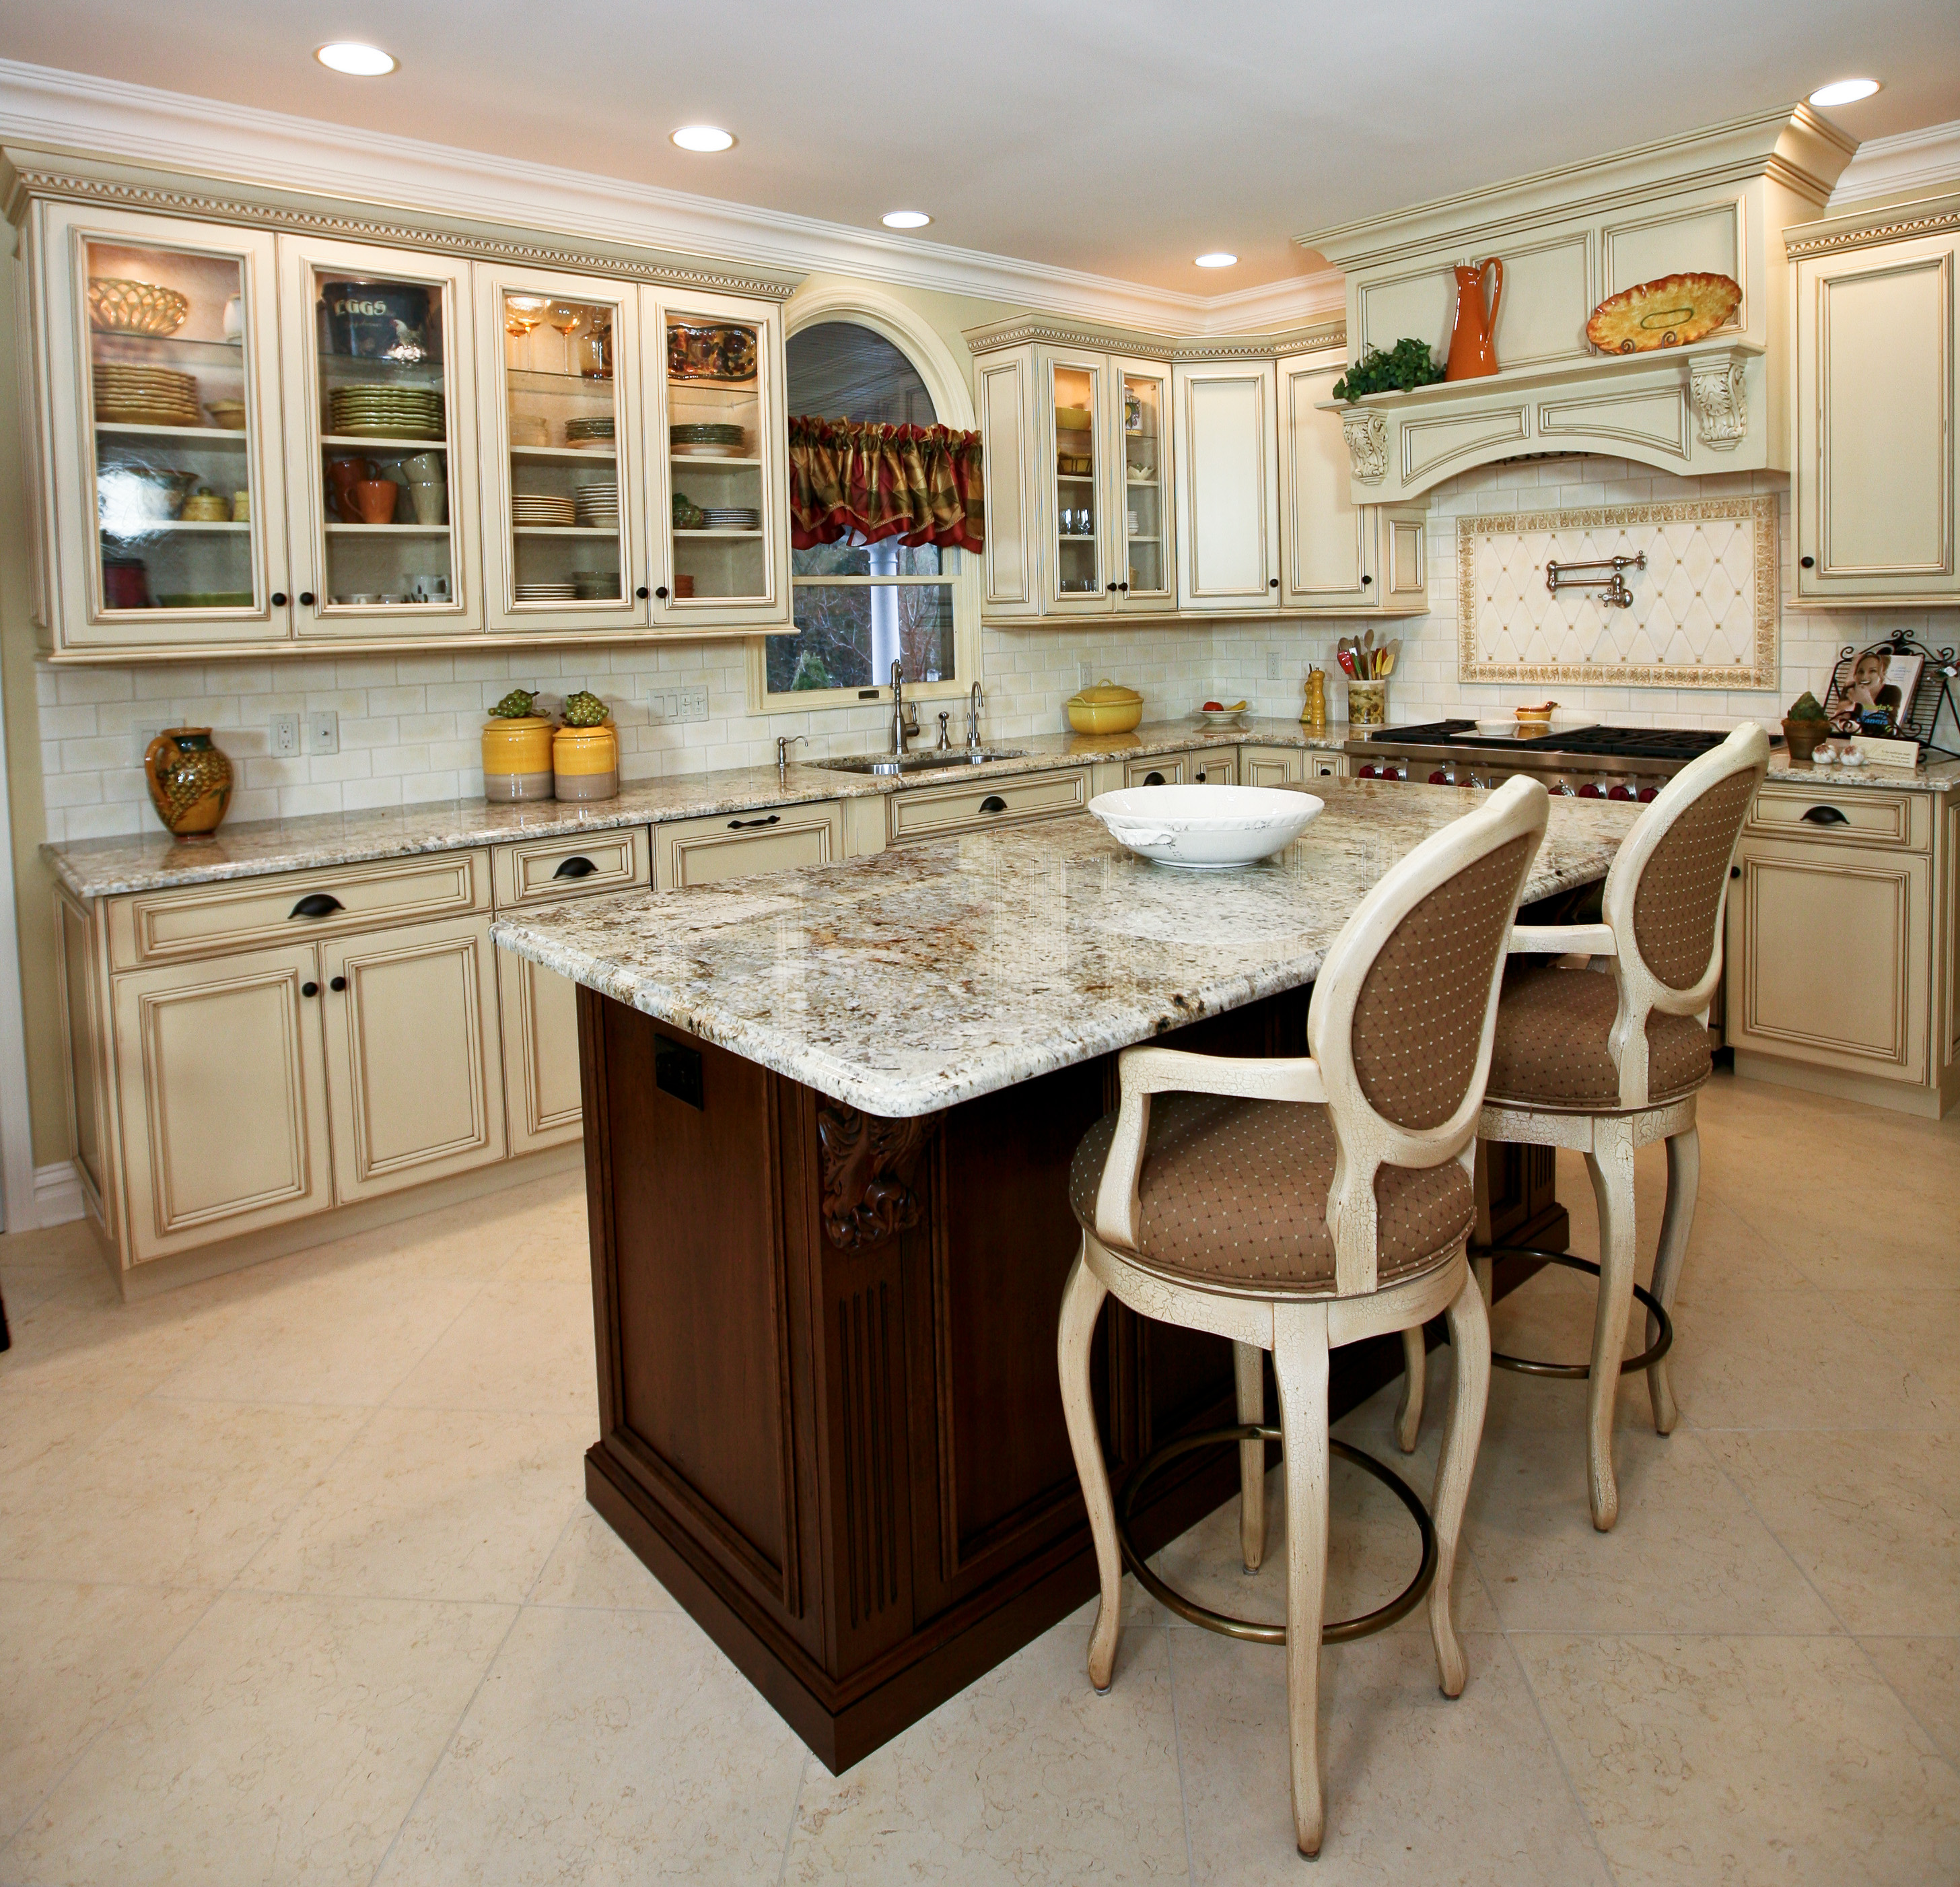 Elegant Kitchens: Country French Elegance Manasquan New Jersey By Design Line Kitchens